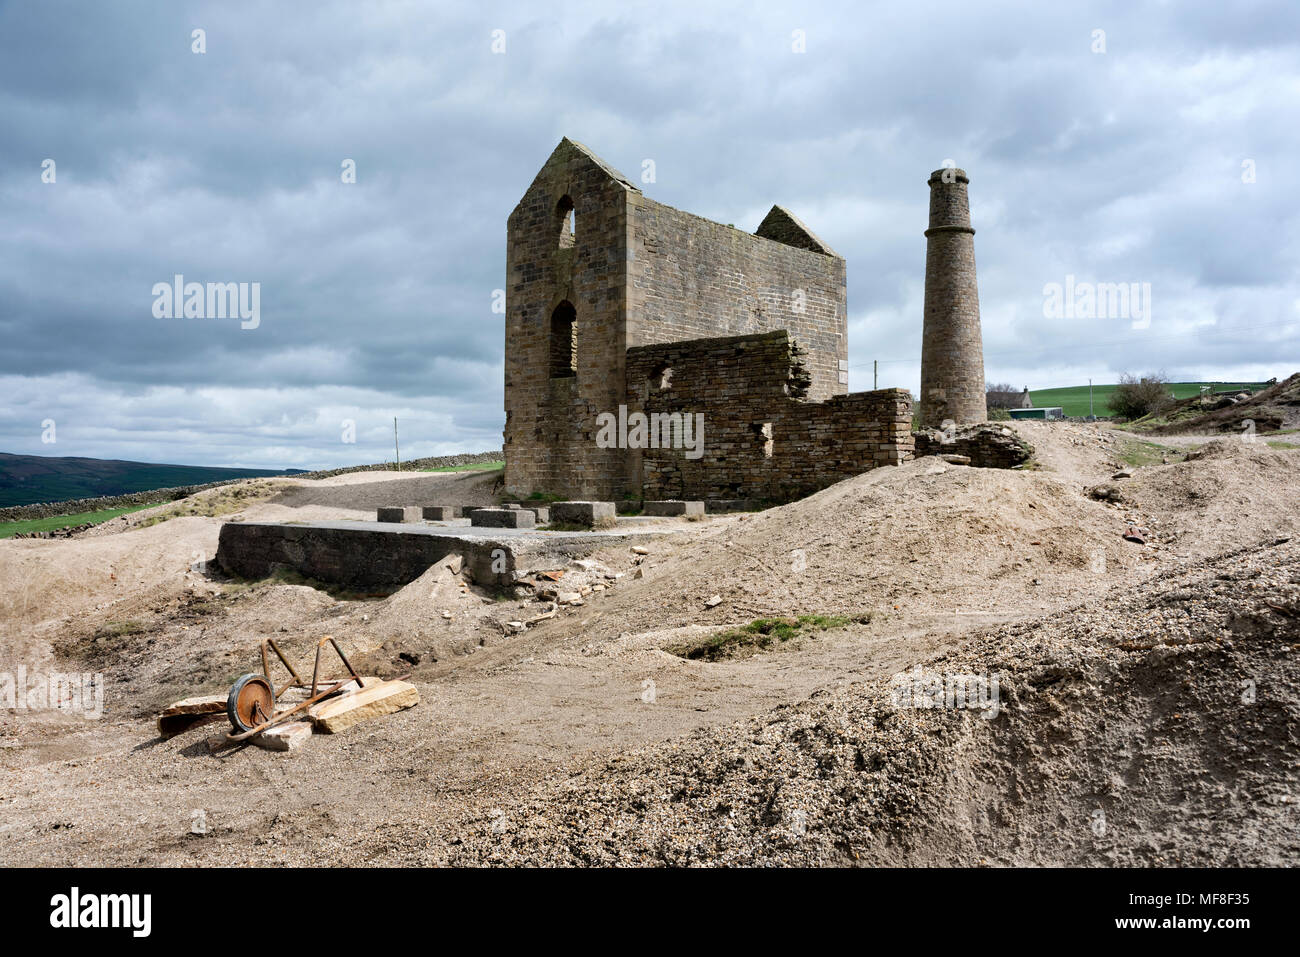 Cononley Lead Mine, near Skipton, North Yorkshire. Historic C19th lead mine with classic engine house, chimney and spoilt heaps. - Stock Image